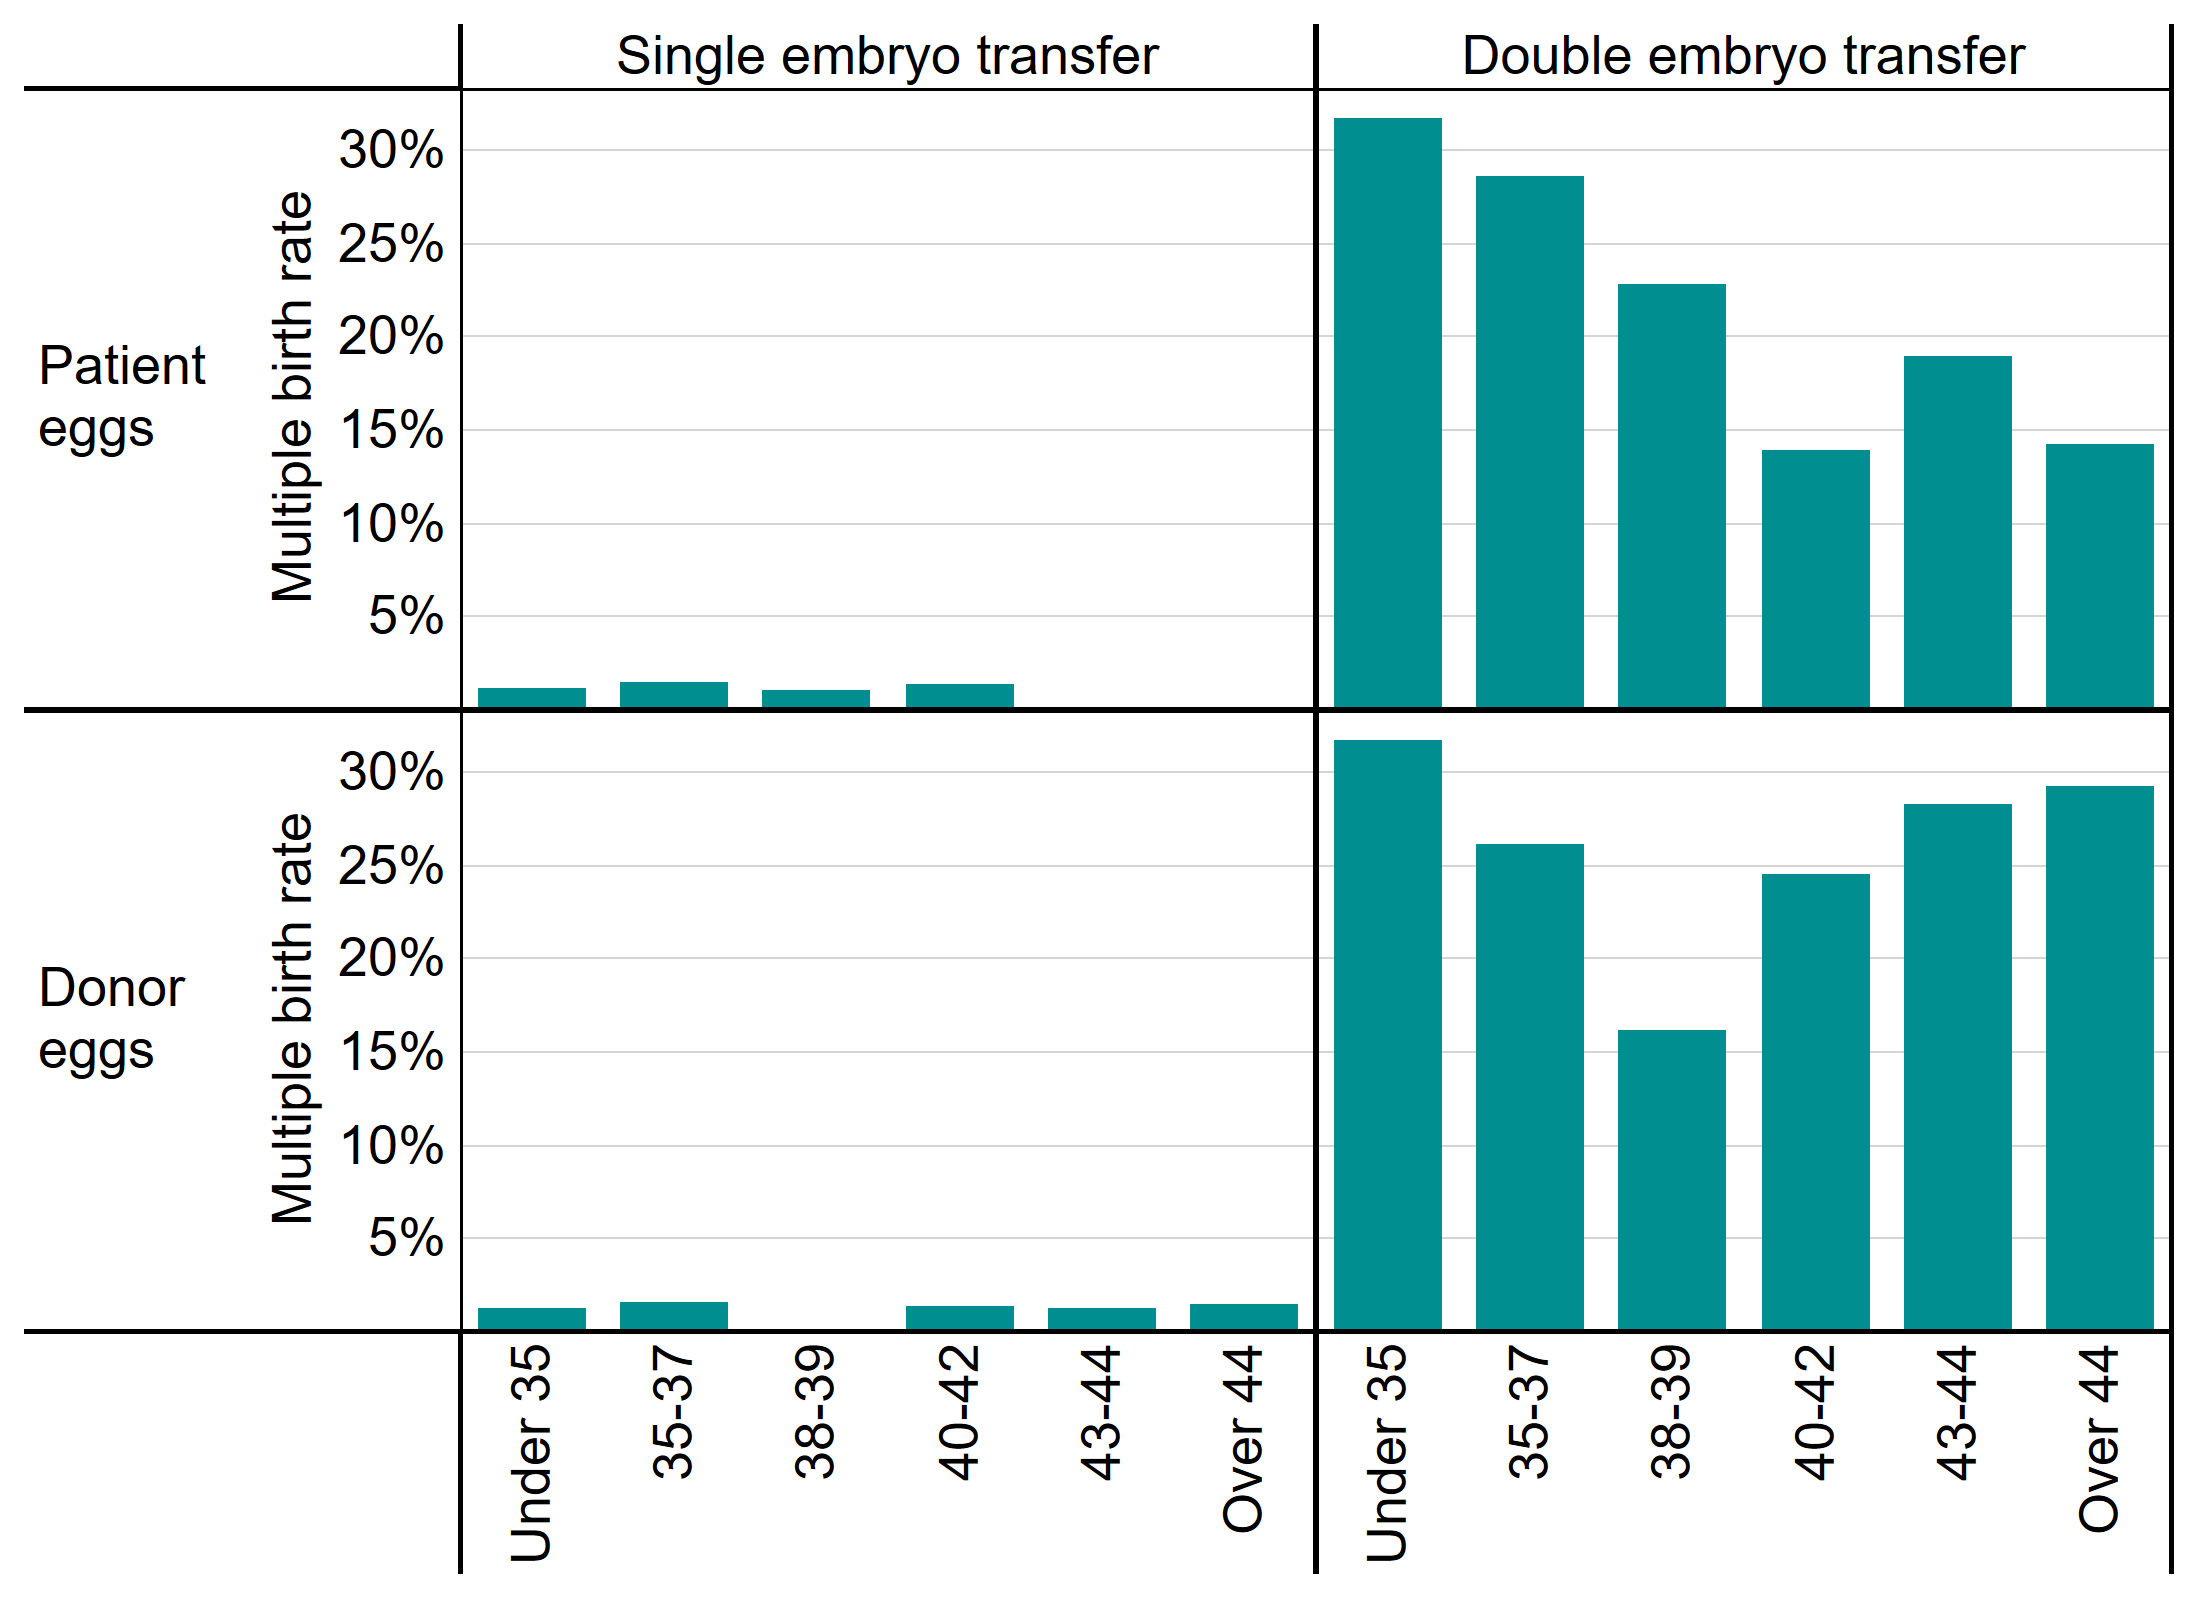 This bar chart shows the multiple birth rate in IVF treatment cycles by patient age bands, egg source (donor eggs or patient eggs) and the number of embryos transferred (one or two). Multiple birth rates for single embryo transfers are between 0% and 2% for all age groups and egg sources. Multiple birth rates for double embryo transfers are highest for younger patients when patient eggs are used at about 31% for patients under 35, decreasing to about 13% for patients over 44 years of age. For double embryo transfers using donor eggs, the highest multiple birth rates are seen with the youngest and oldest patients, with patients under 35 having a multiple birth rate around 31% and patients over 44 having a multiple birth rate of about 29%.